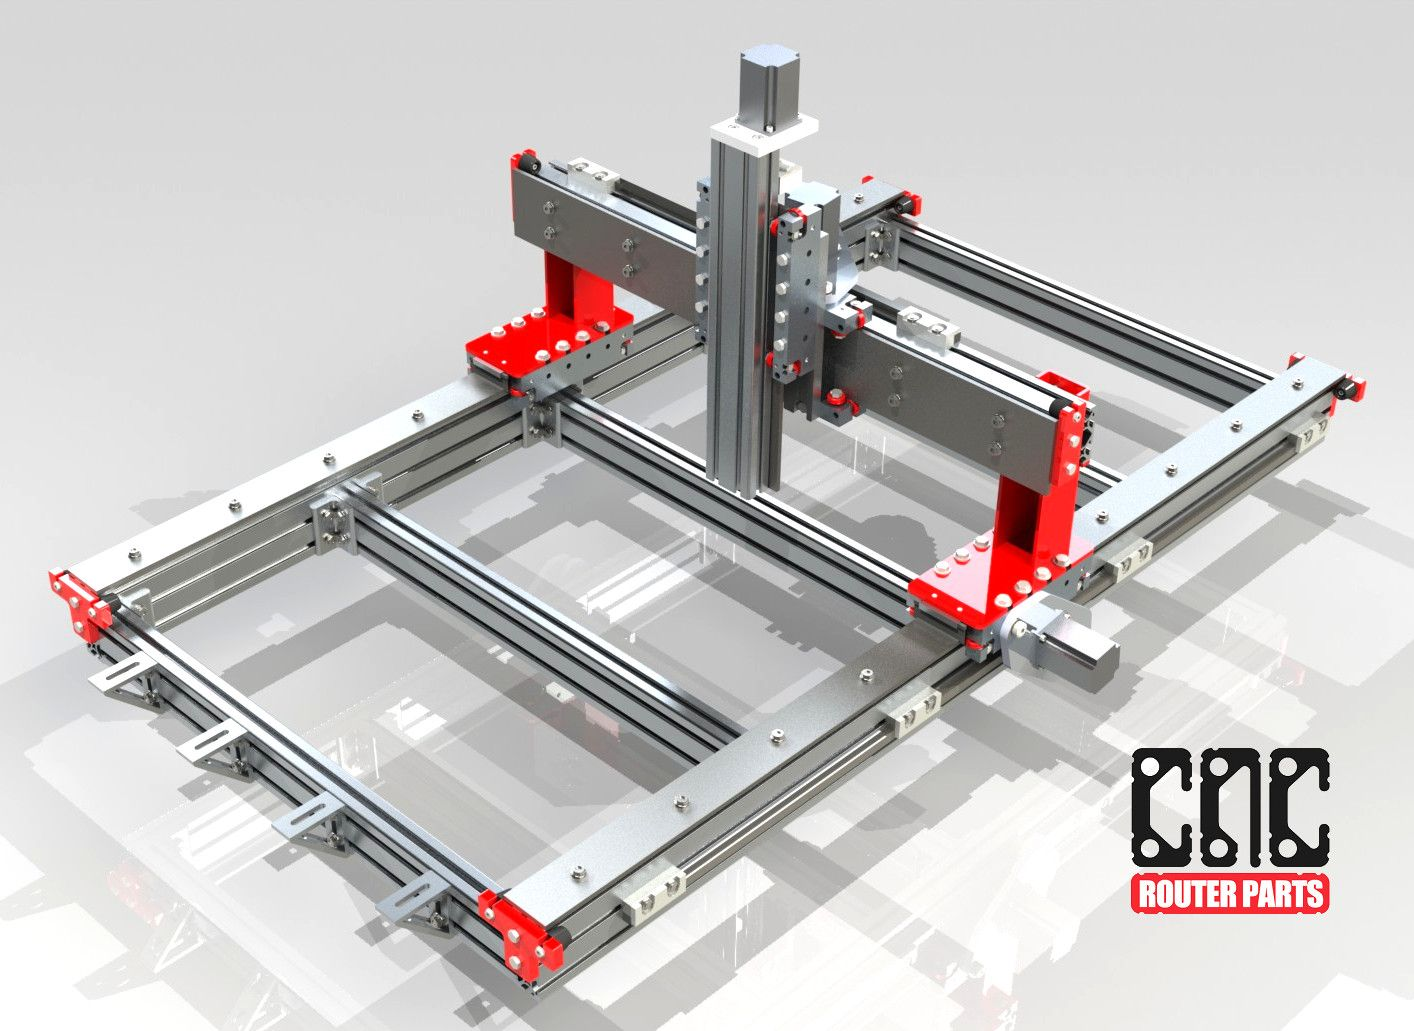 Crp2448 2 X 4 Cnc Router Kit Welcome To Cnc Router Parts Your